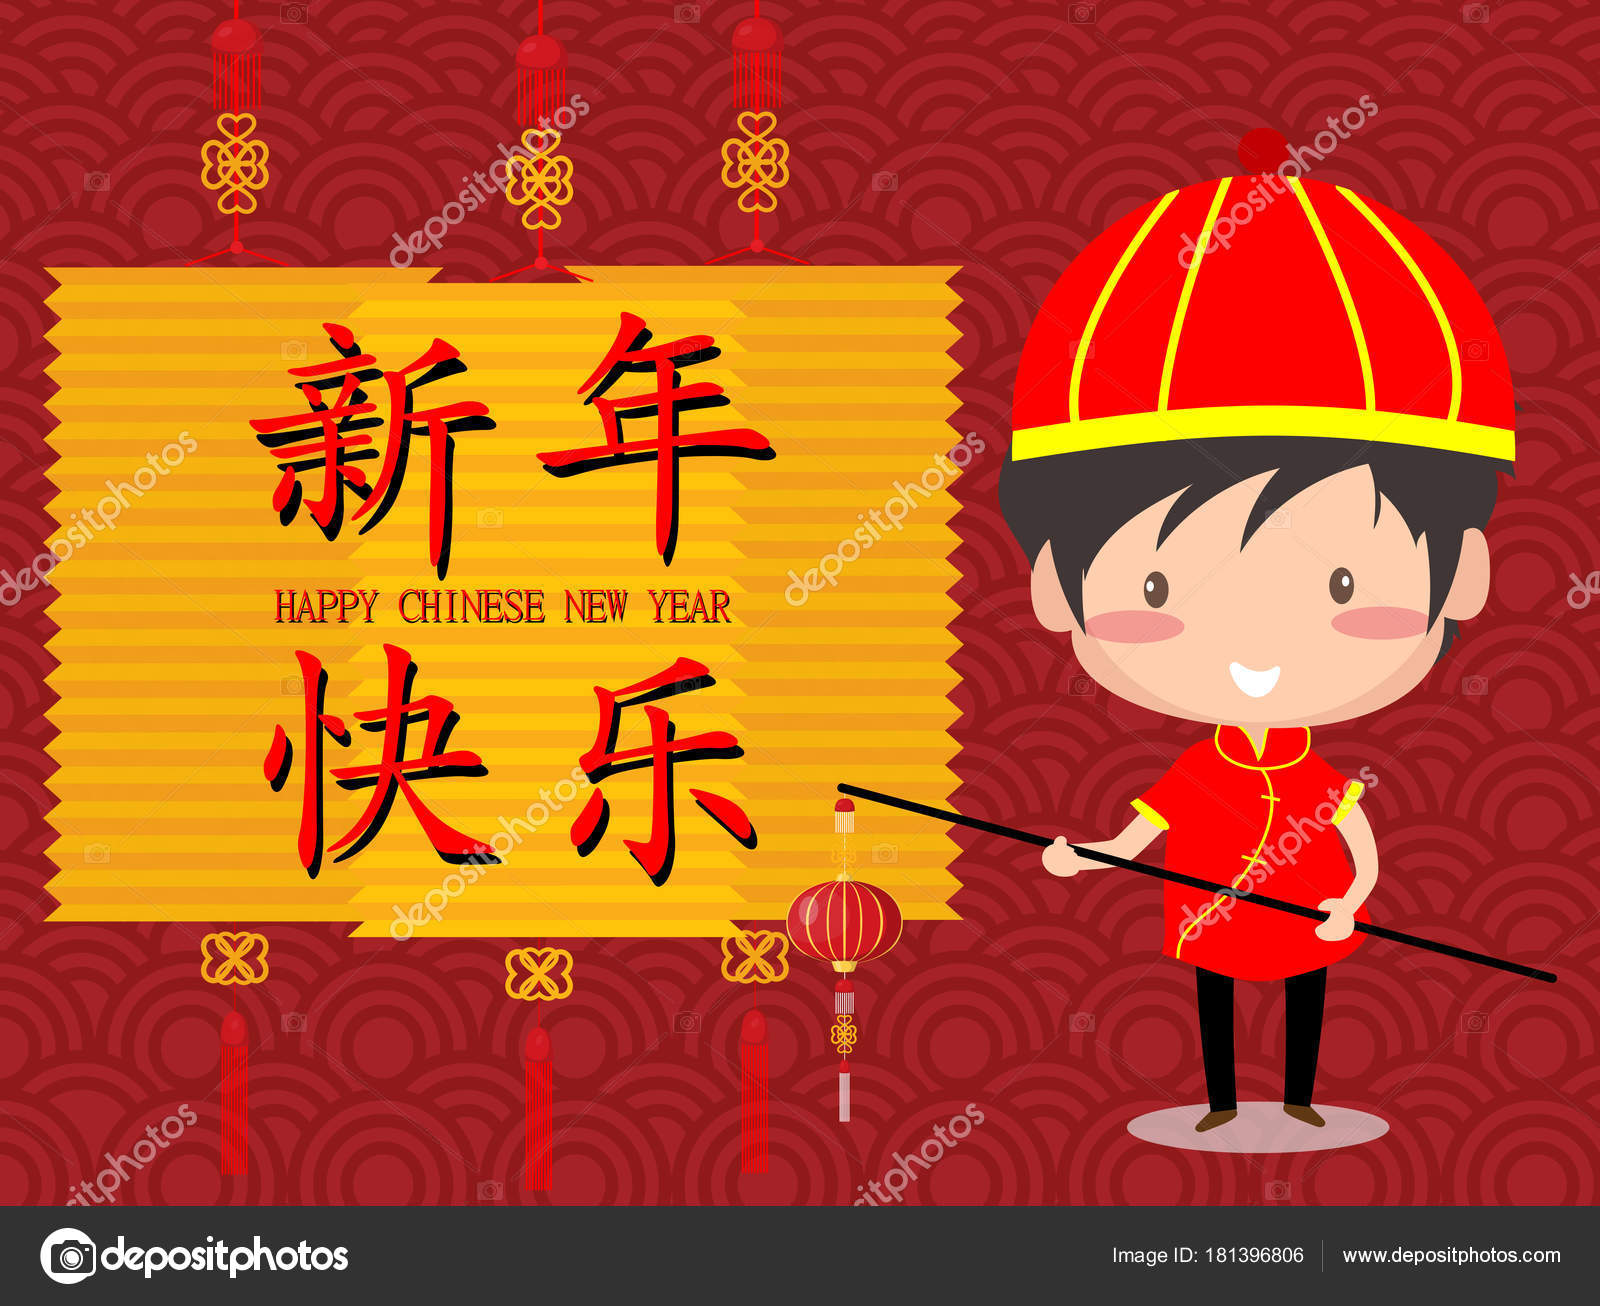 2018 happy chinese new year design cute boy happy smile in chinese words on chinese pattern background chinese translation happy new year